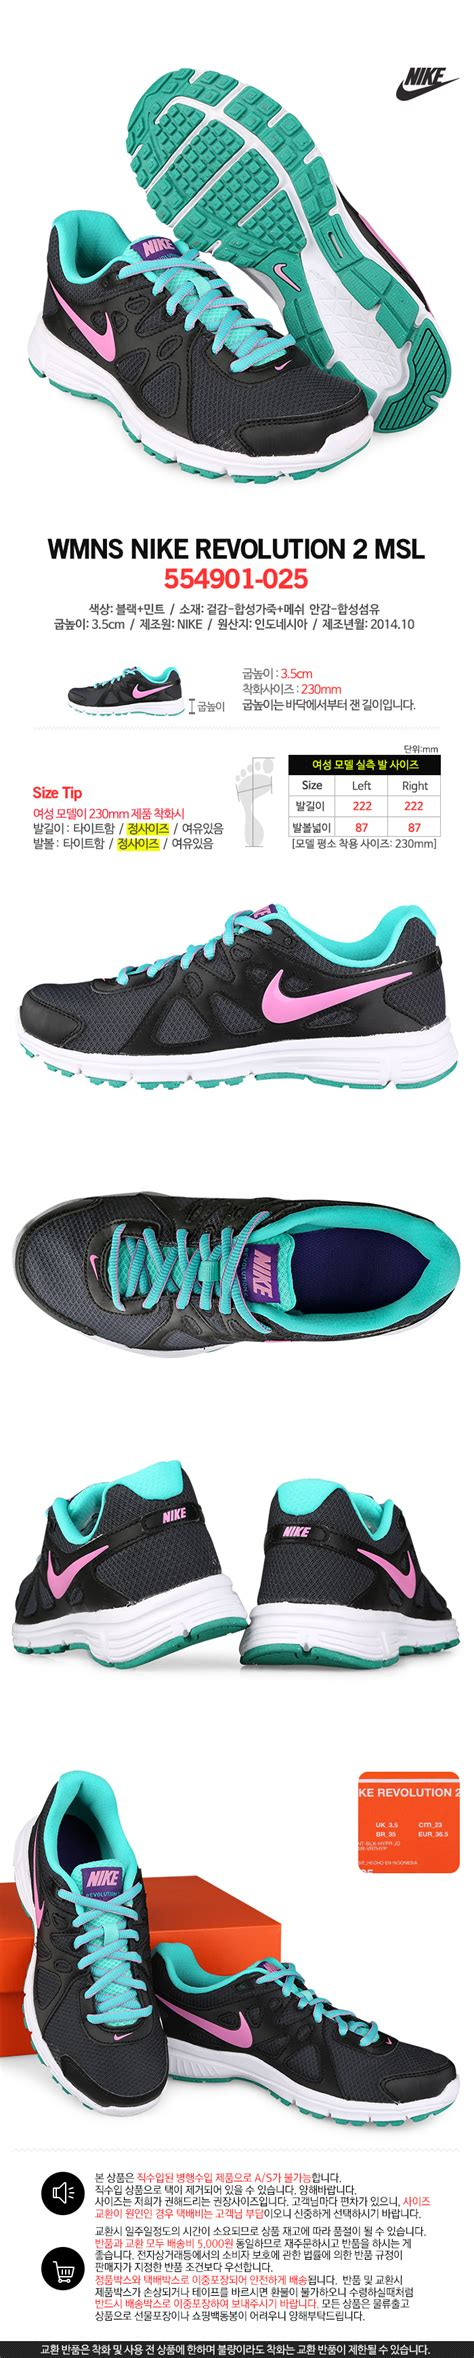 nike shoes s revolution2 t lite 6 types 11street